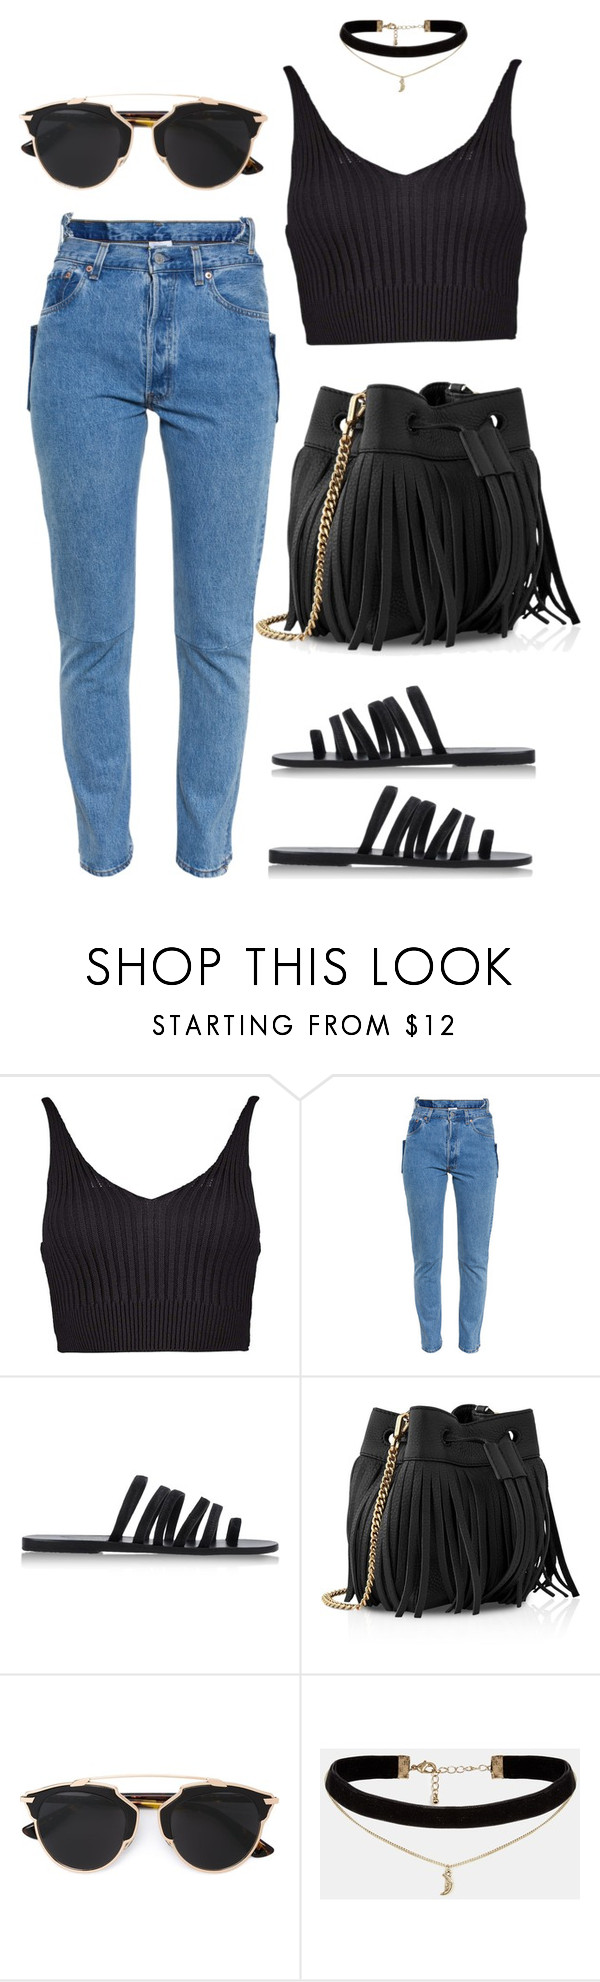 """Untitled #405"" by eaubleue ❤ liked on Polyvore featuring Boohoo, Vetements, Ancient Greek Sandals, Whistles, Christian Dior and ASOS"